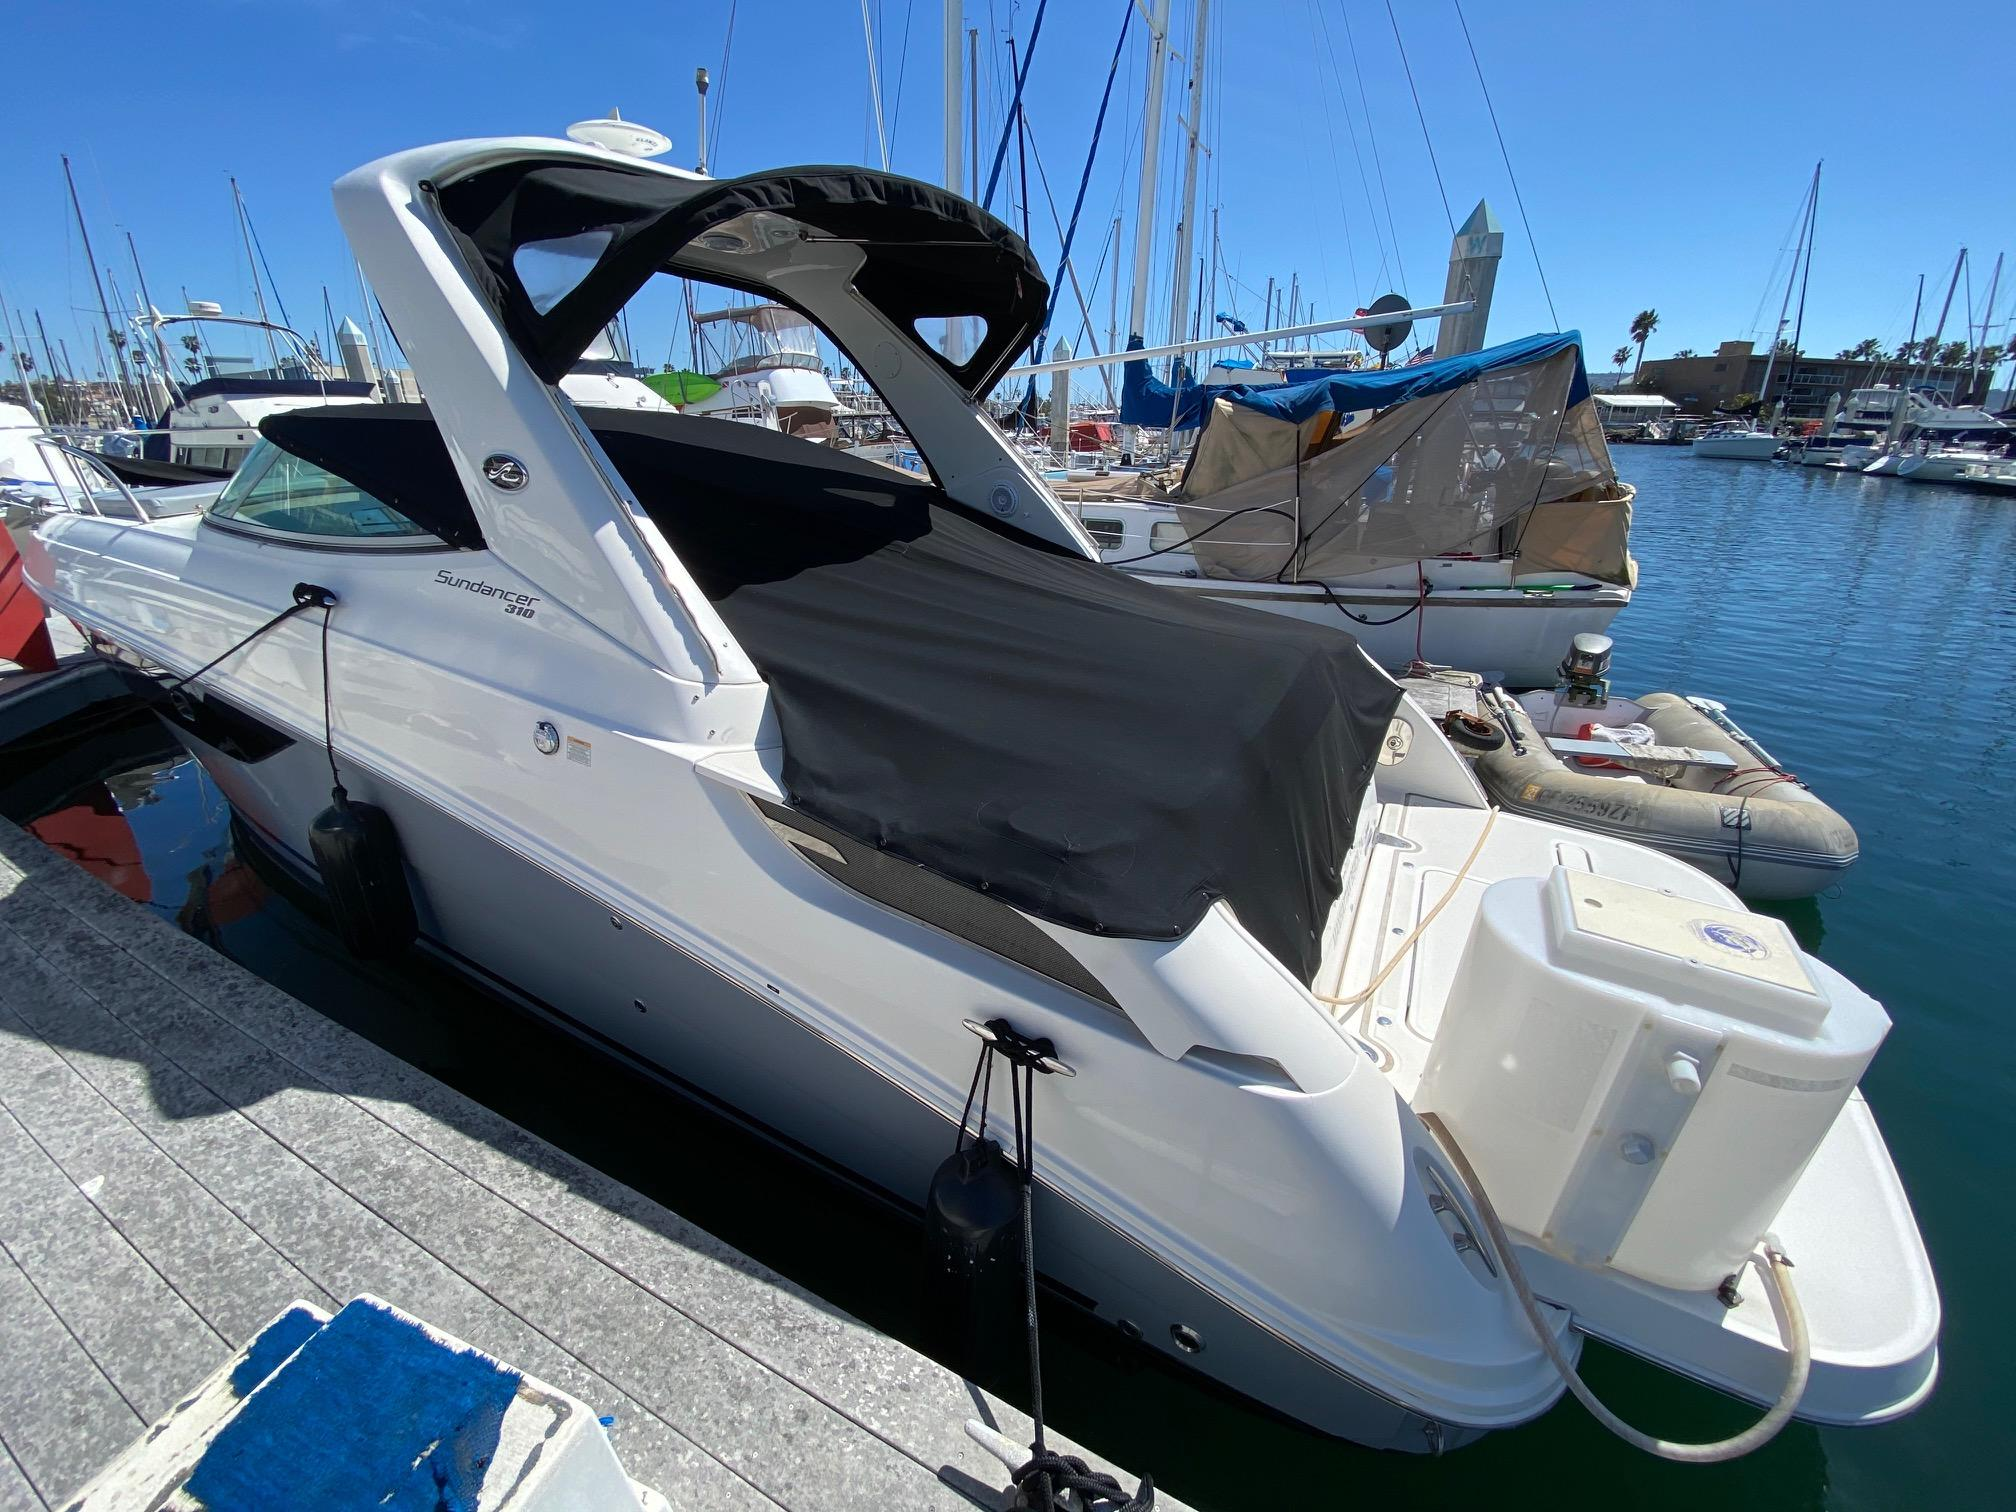 2016 Sea Ray 310 Sundancer #TB1955JP inventory image at Sun Country Coastal in Newport Beach